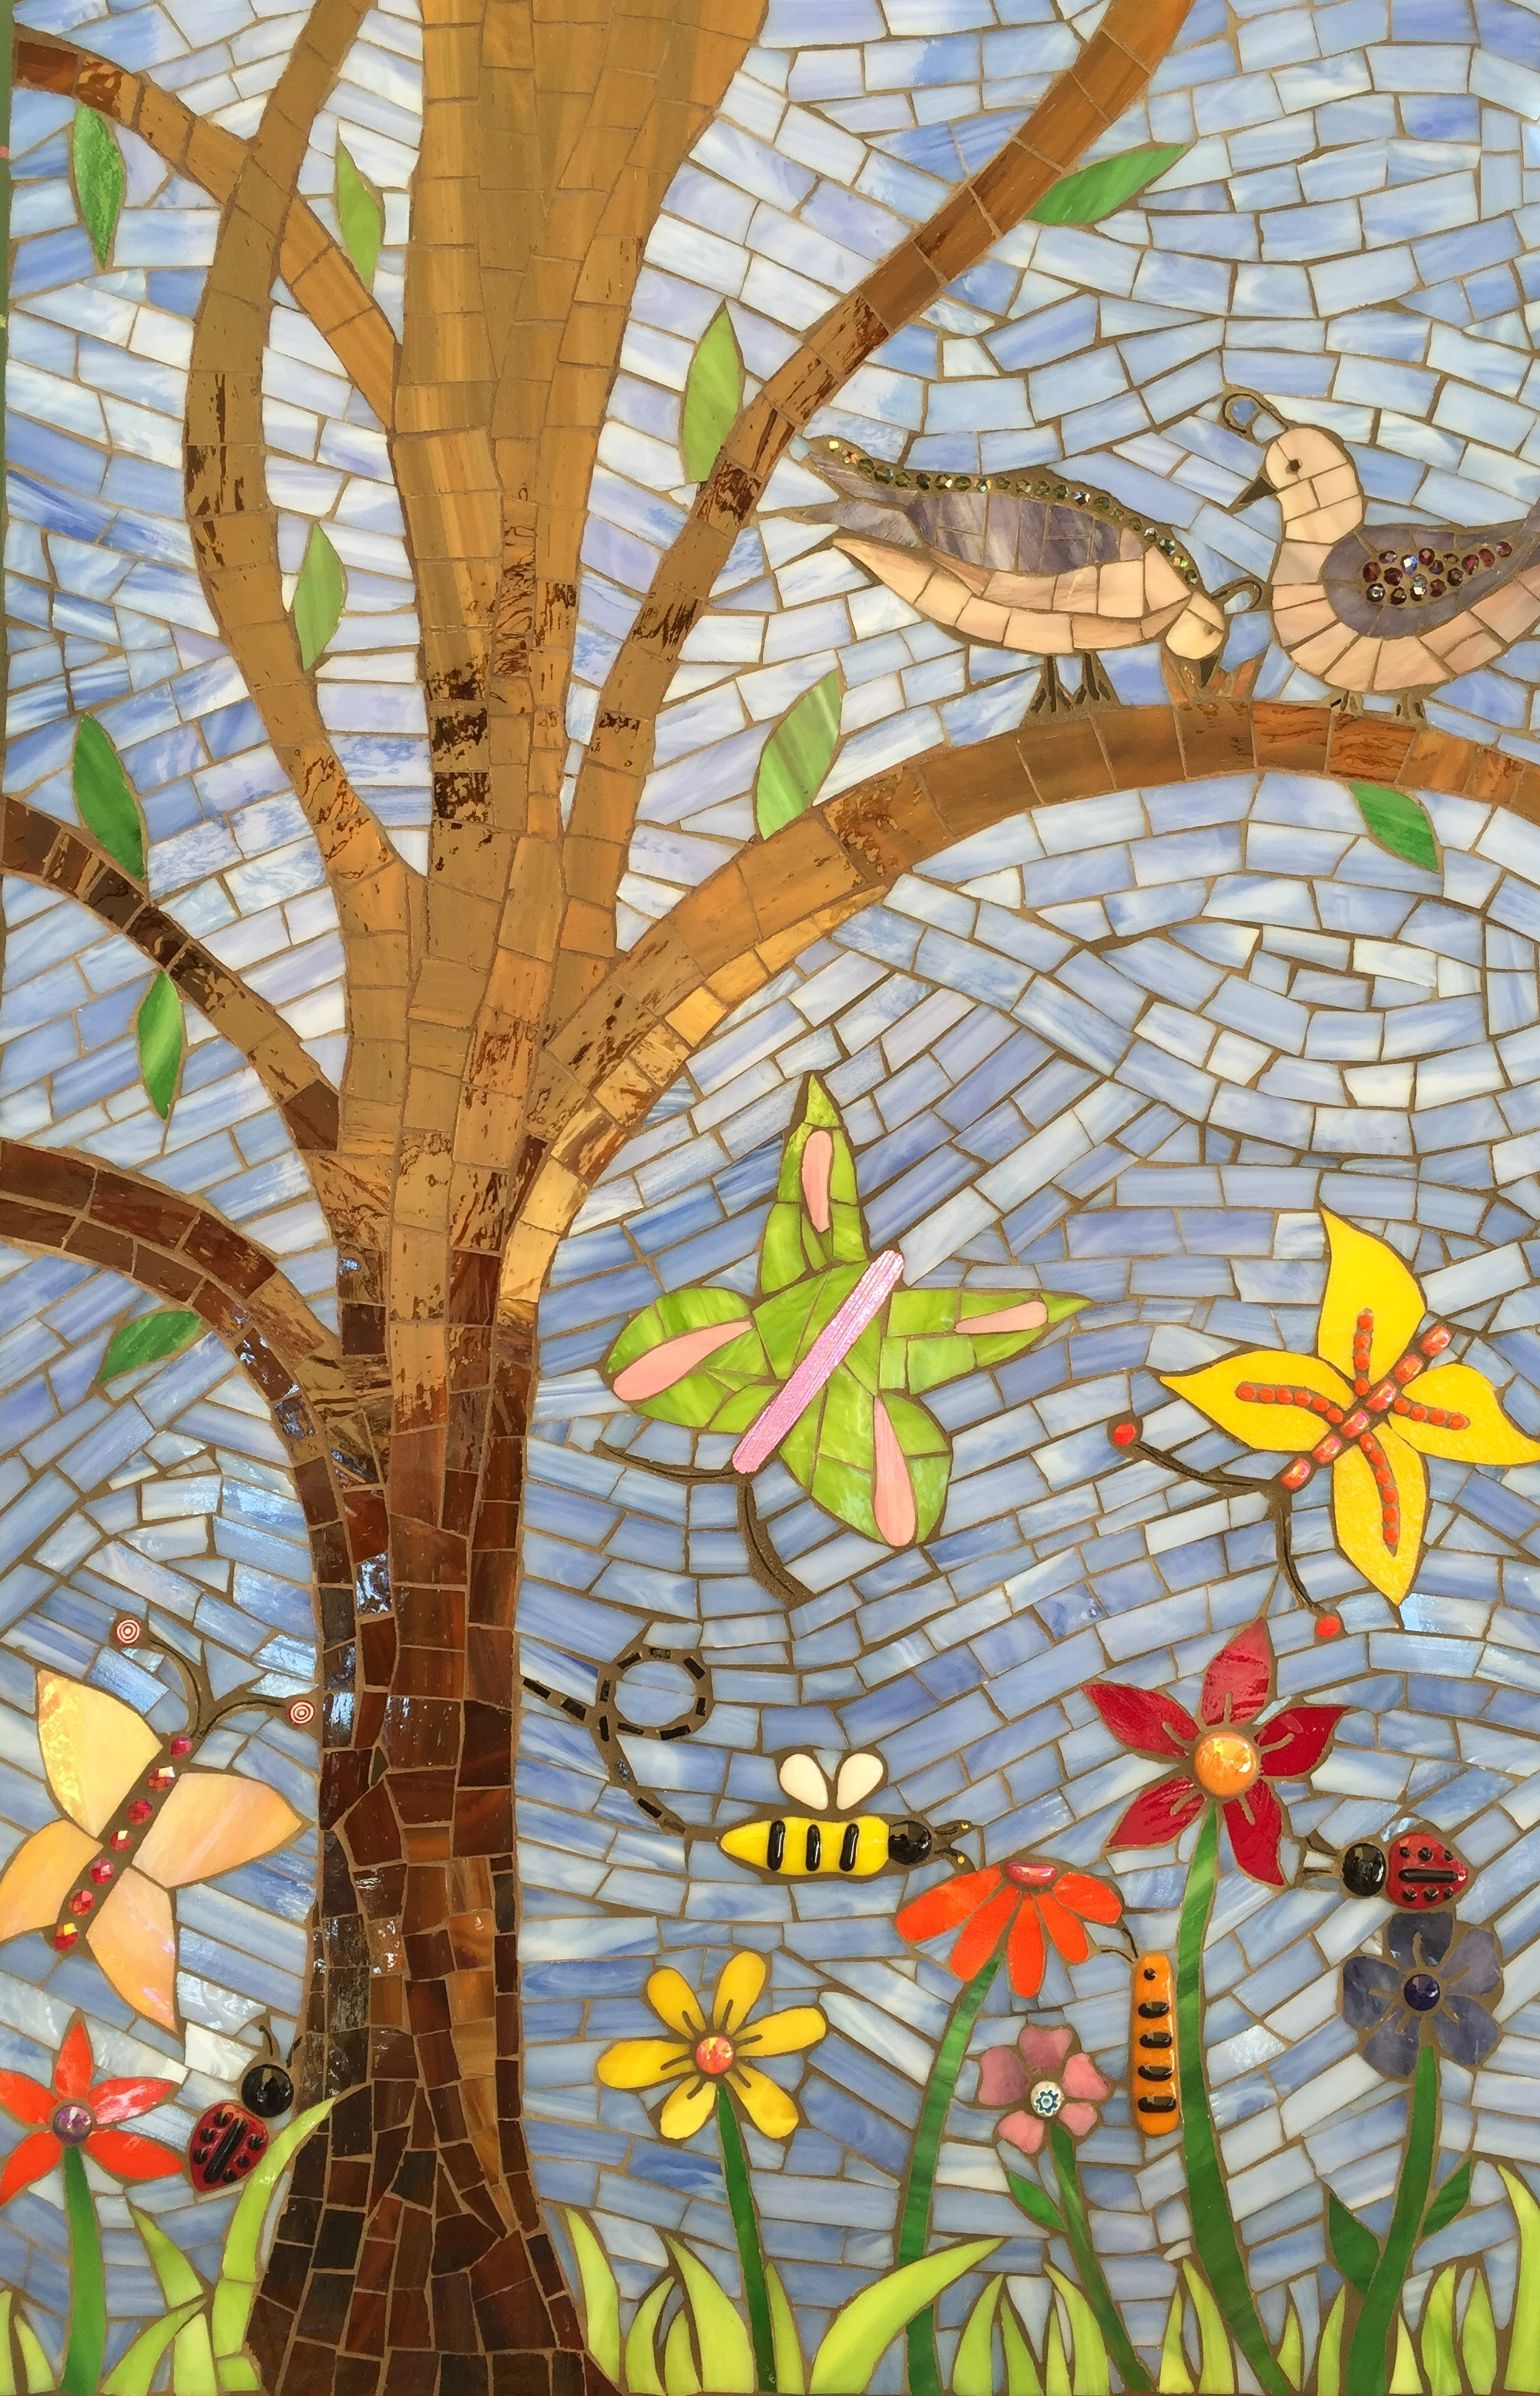 Happy Spring Day 2015 Stained glass, glass fusions and cement grout. On Wedi board.